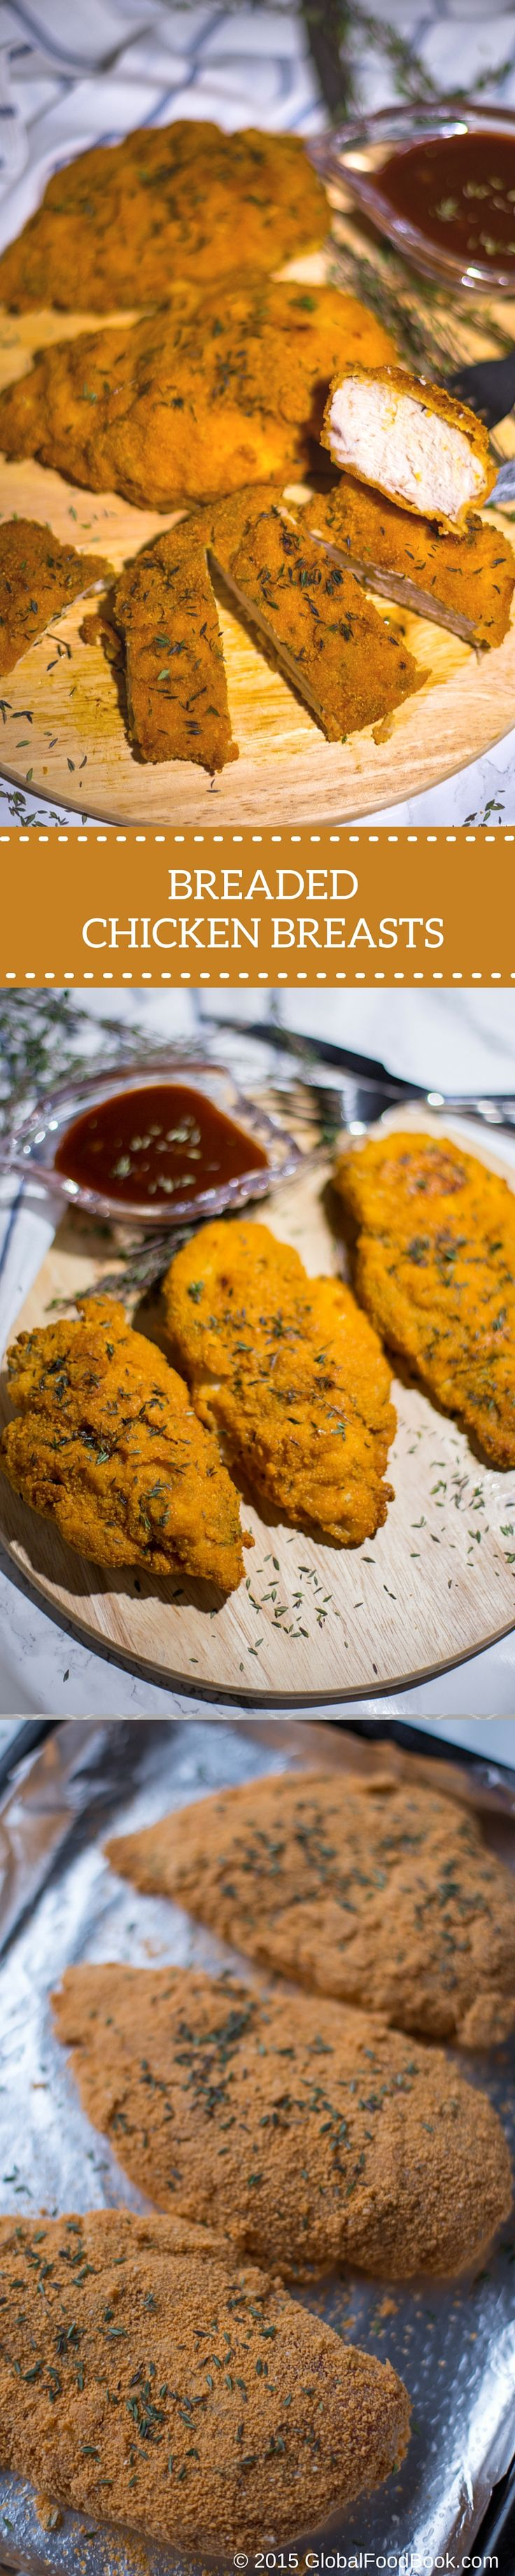 BREADED CHICKEN BREASTS. Cold weather usually prompts me yearning for warm, spicy and hearty dishes at any time of the day. While I was busy perusing through the freezer, thes....  .